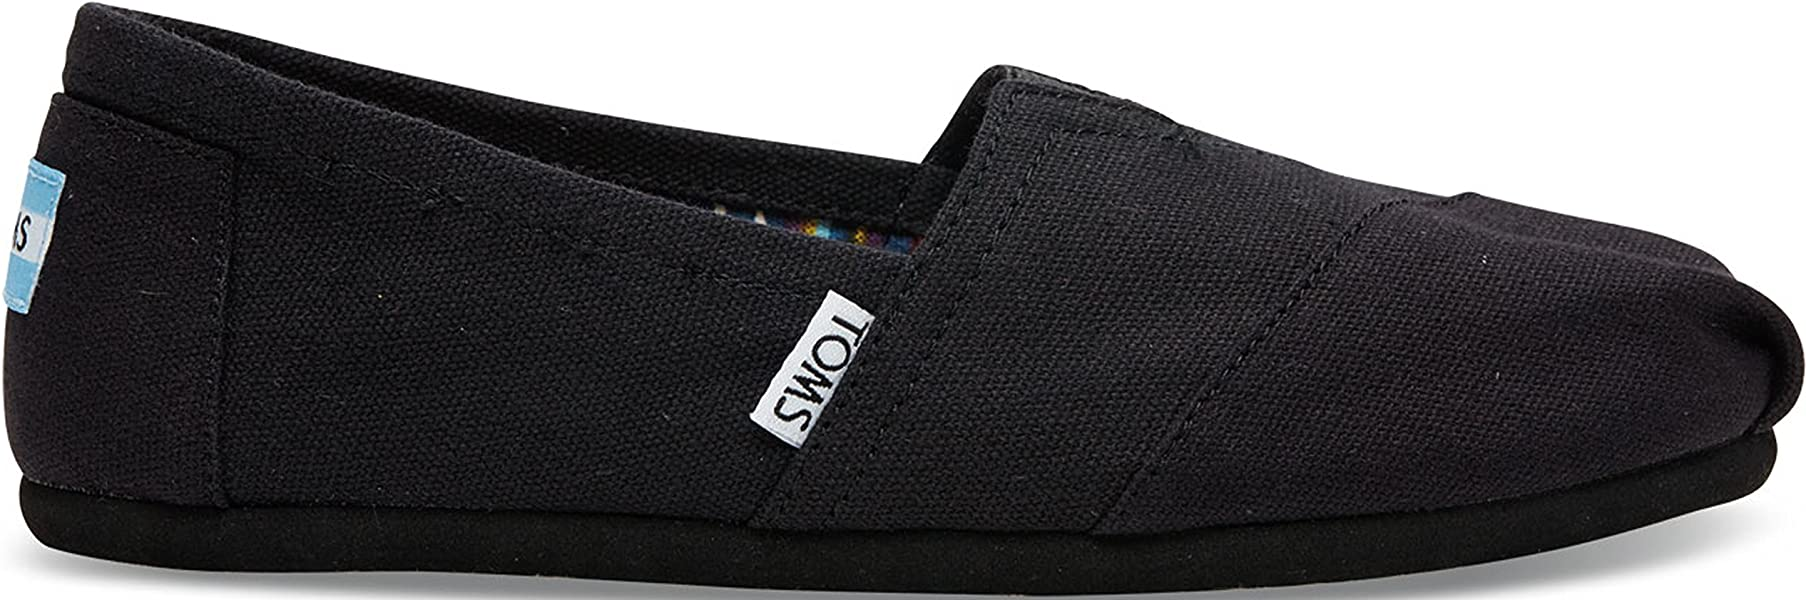 Women's Classic Canvas Black on Black Slip on Shoe 8.5 B(M) US